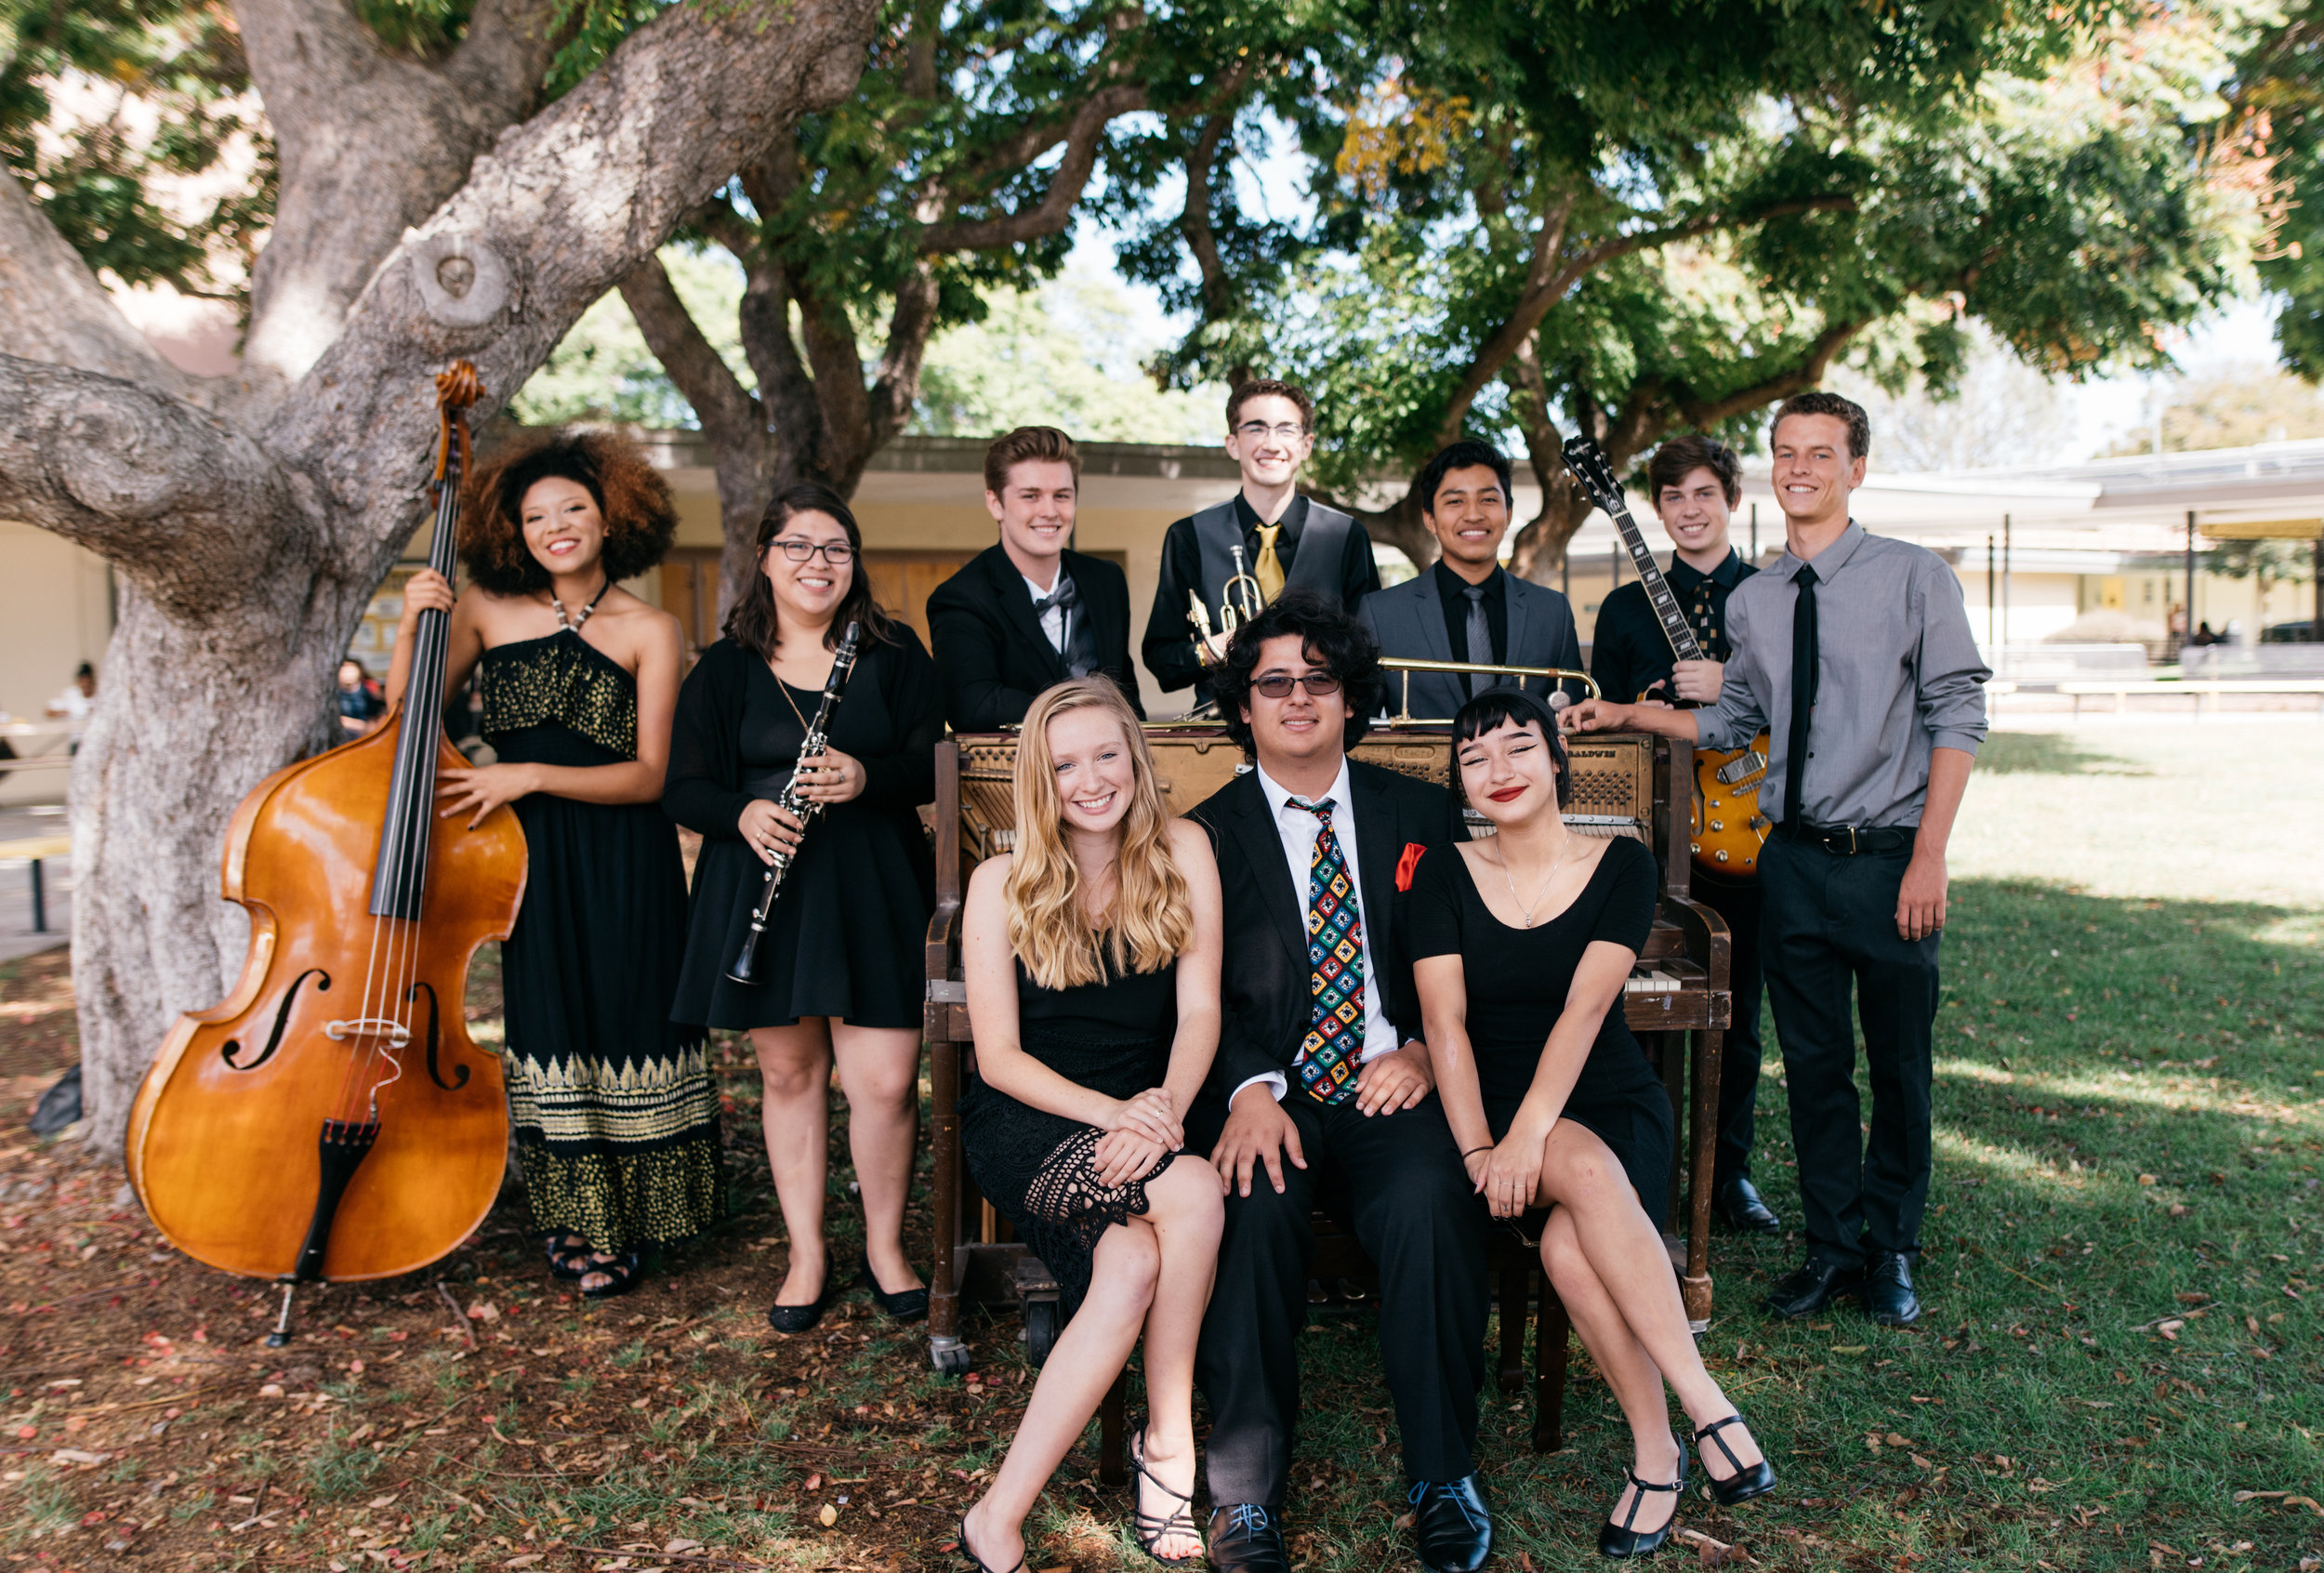 Preservationists  : We bring the excitement and joy of New Orleans to you with every event. This young group of musicians has blown audiences away all over the world with their high energy and professional performances.  More info here.